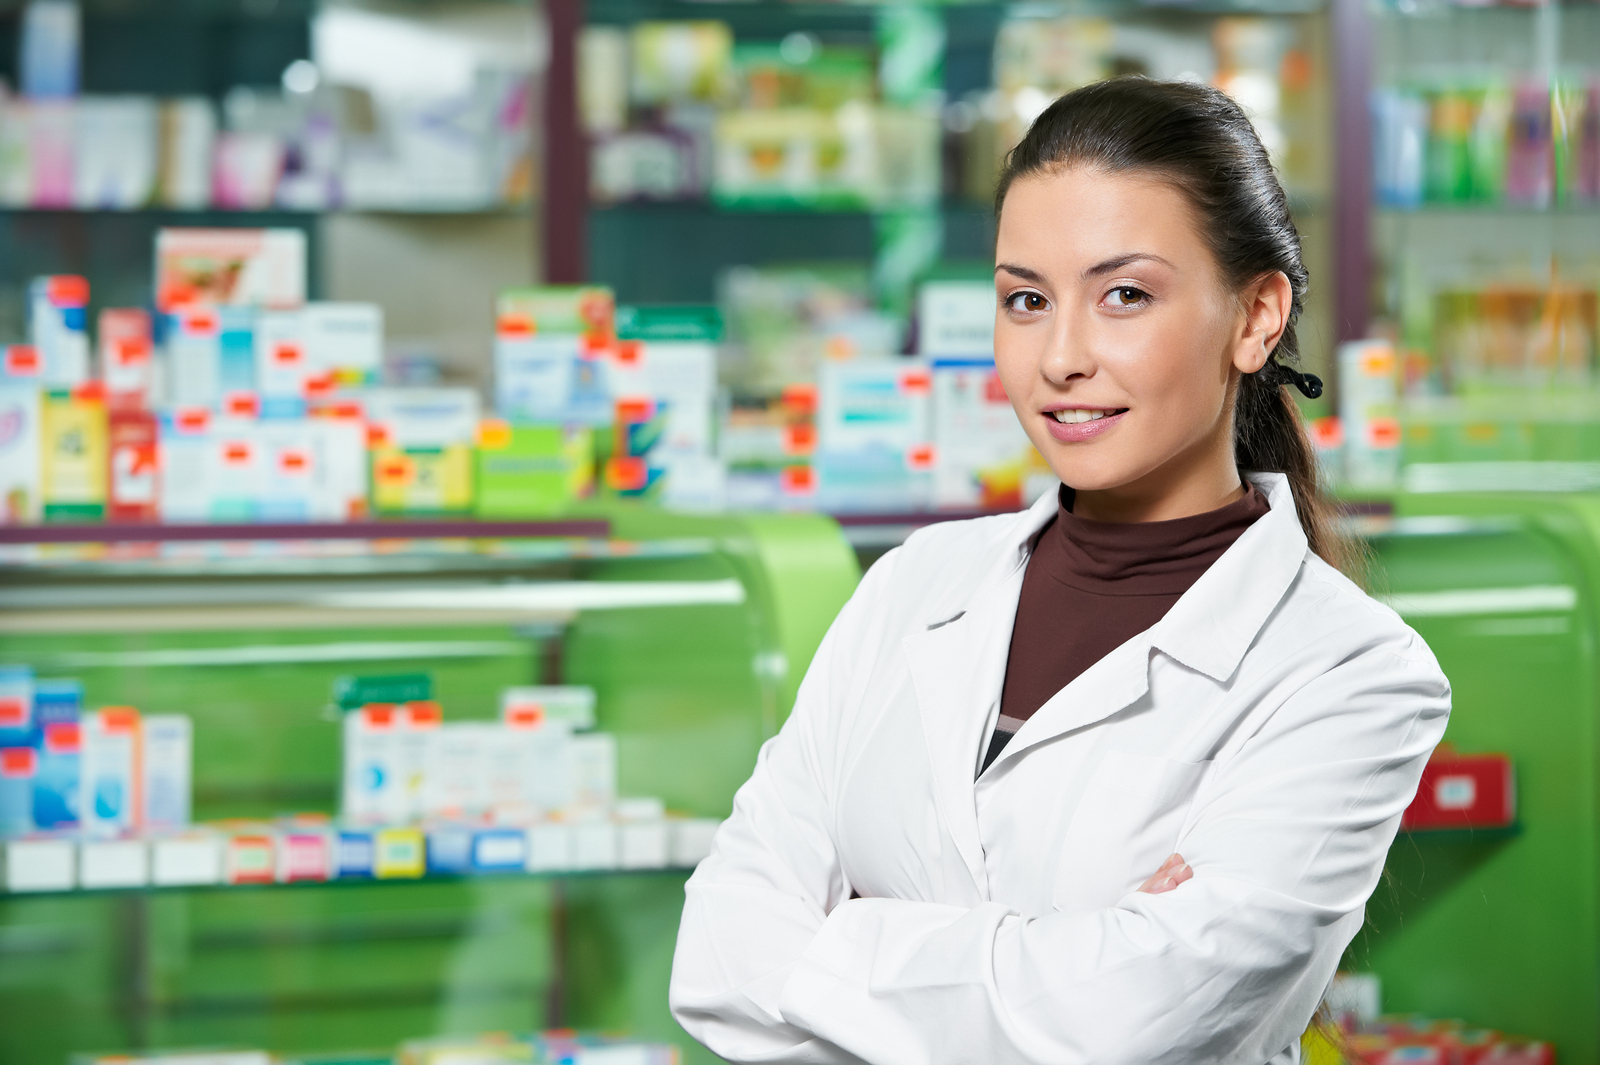 Pharmacy Technician Job Description How to Become a Pharmacy – Pharmacist Job Description